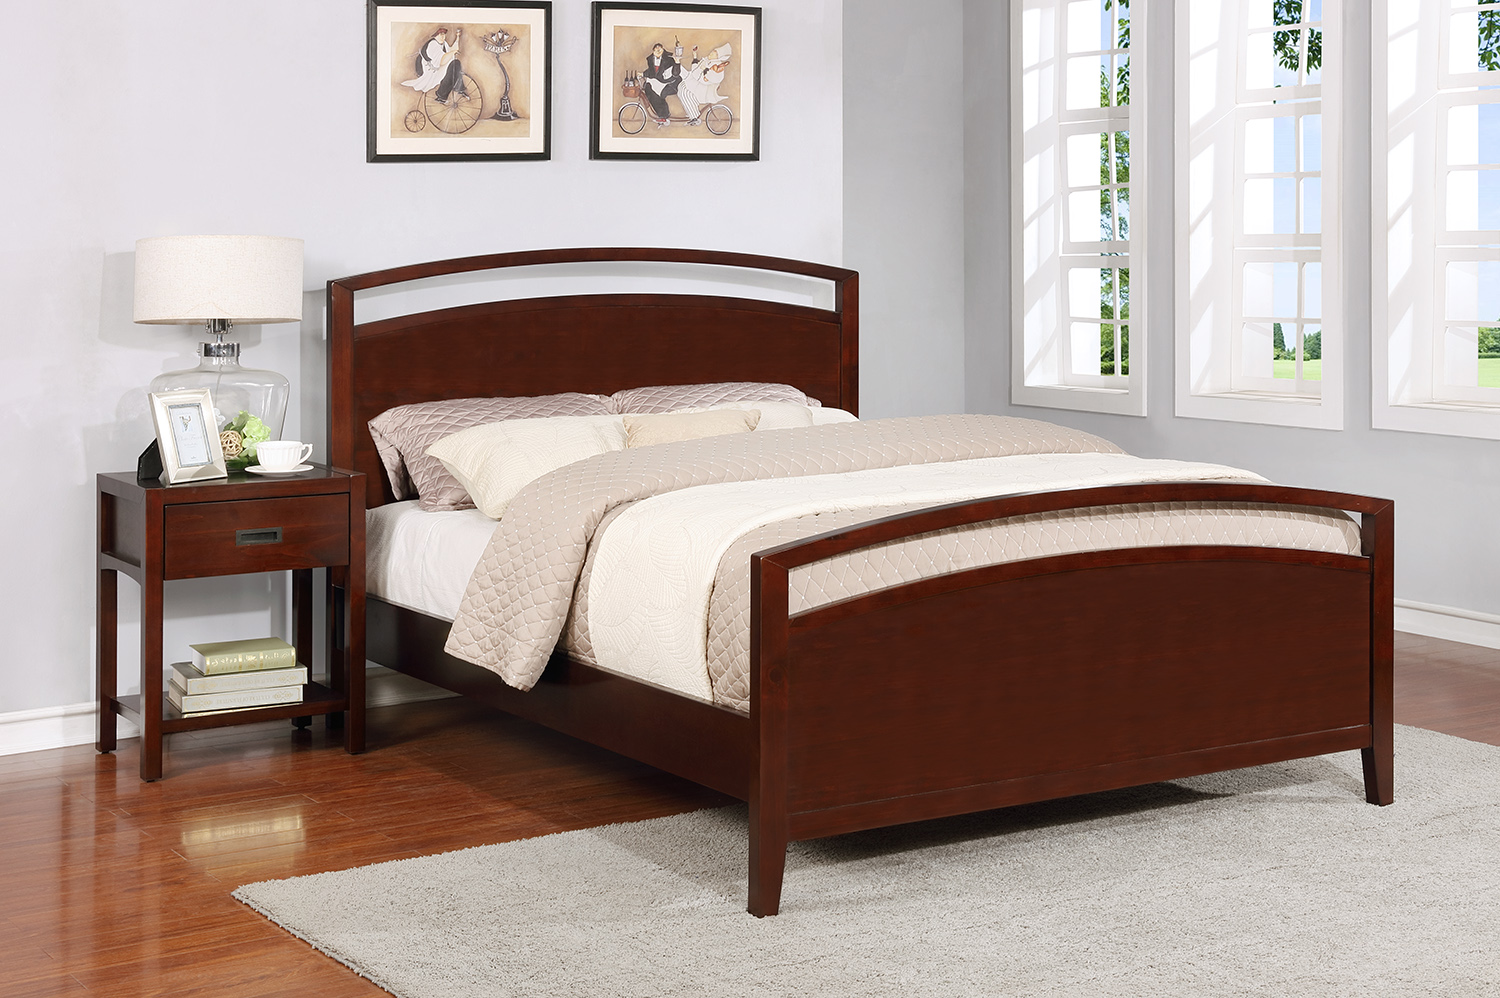 Reisa Platform Bed - King, Espresso Brown